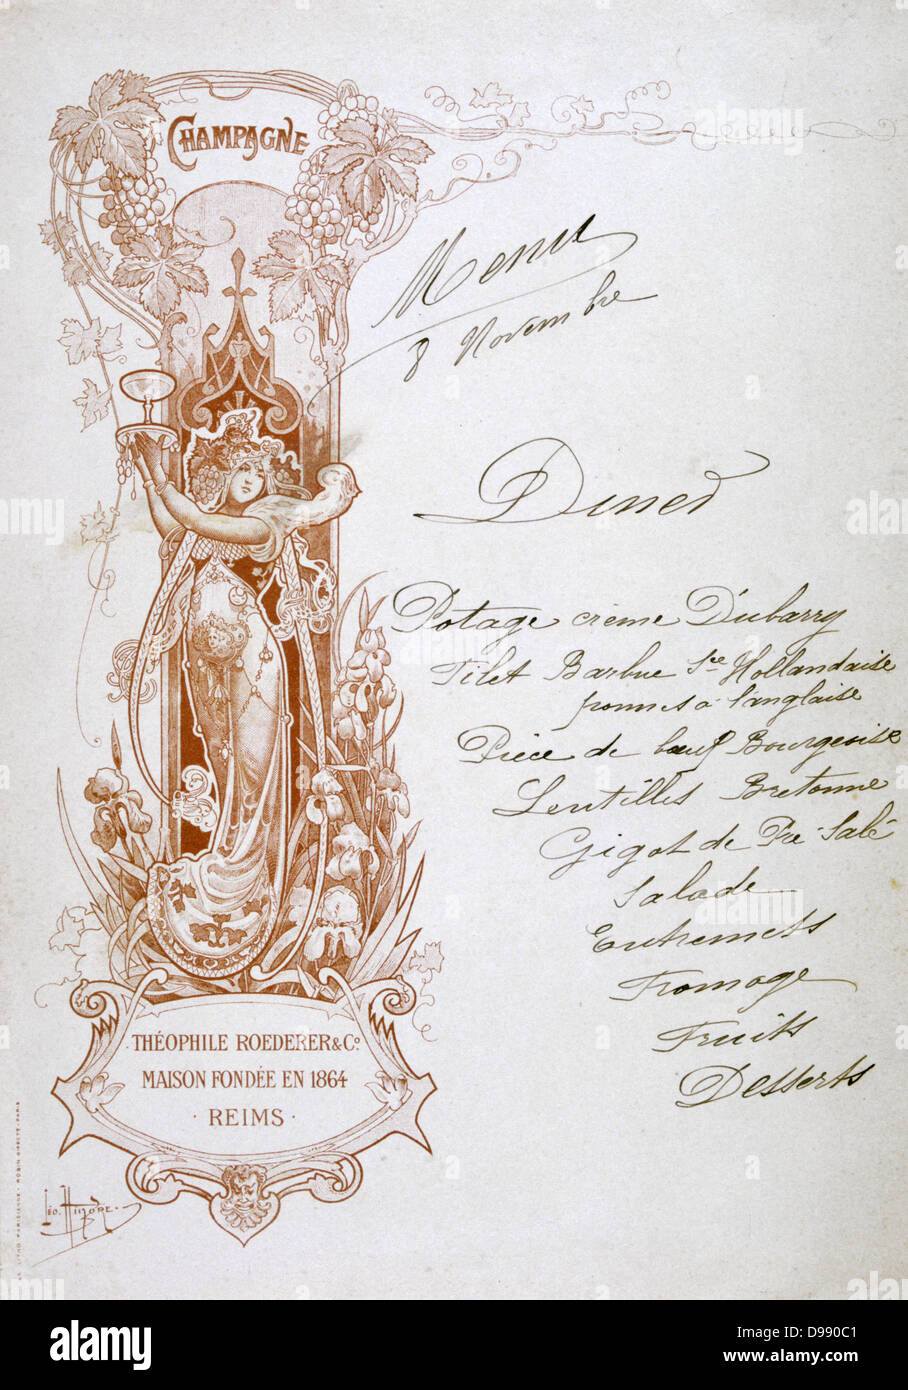 Dinner menu hand-written on a publicity card for Theophile Roederer & Co. Champagne, late 19th century. Food - Stock Image